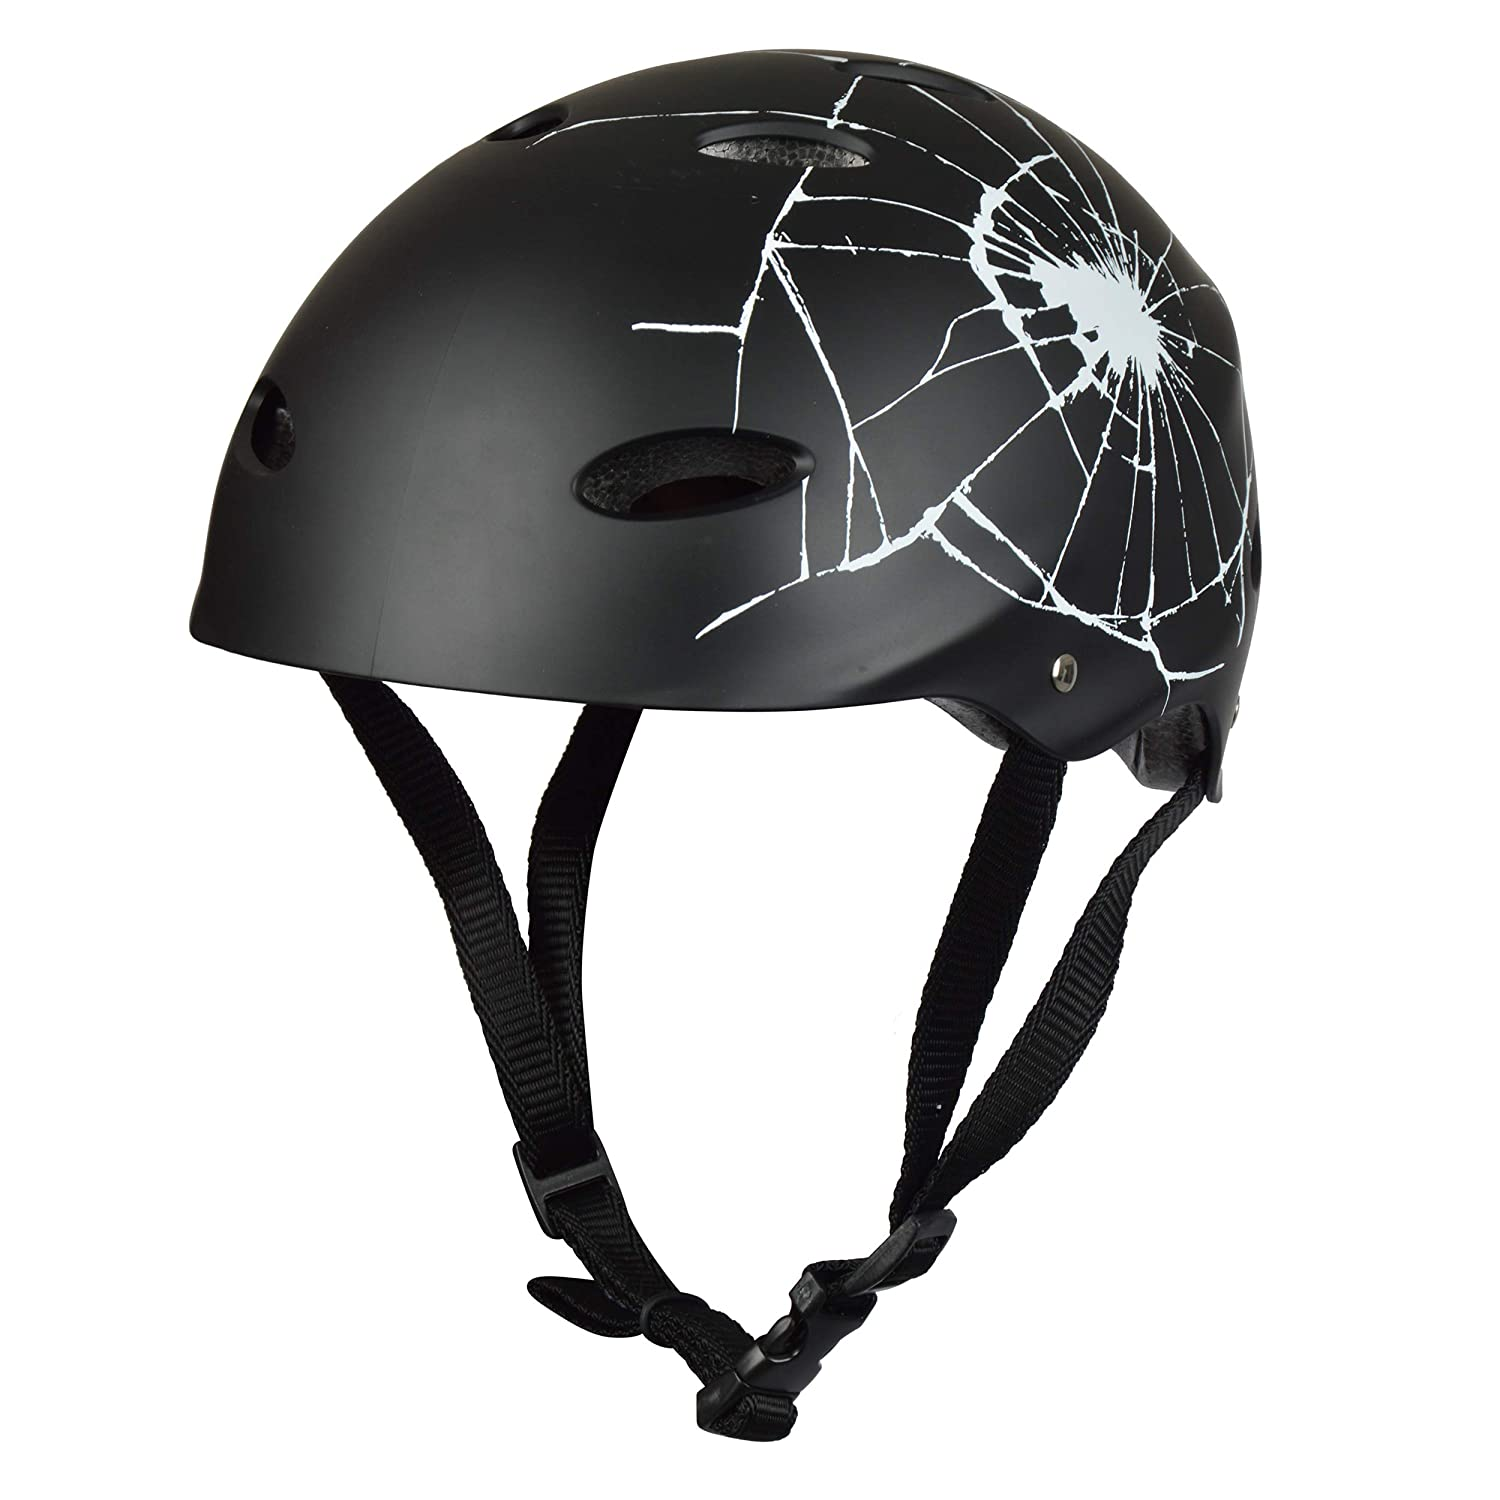 Apollo Skate and Bike Helmets - Adjustable Helmet for Skateboarding, Scooters, BMX, etc. with Adjustable Wheels, Suitable for Children, Adults - in Different Sizes and Colours